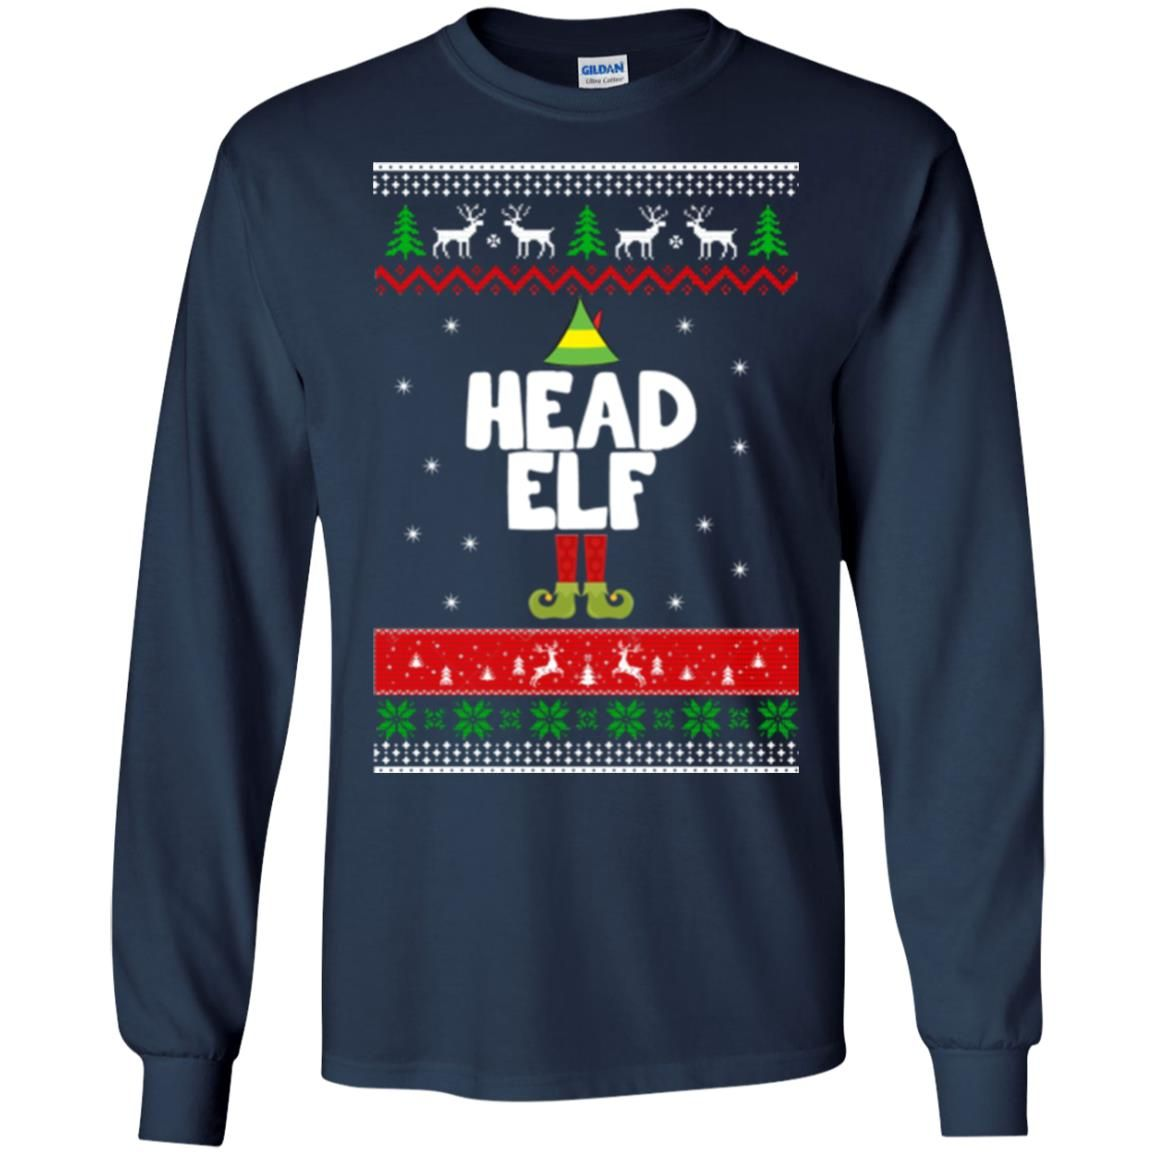 image 1768 - Christmas Vacation: Buddy The Elf sweater, hoodie